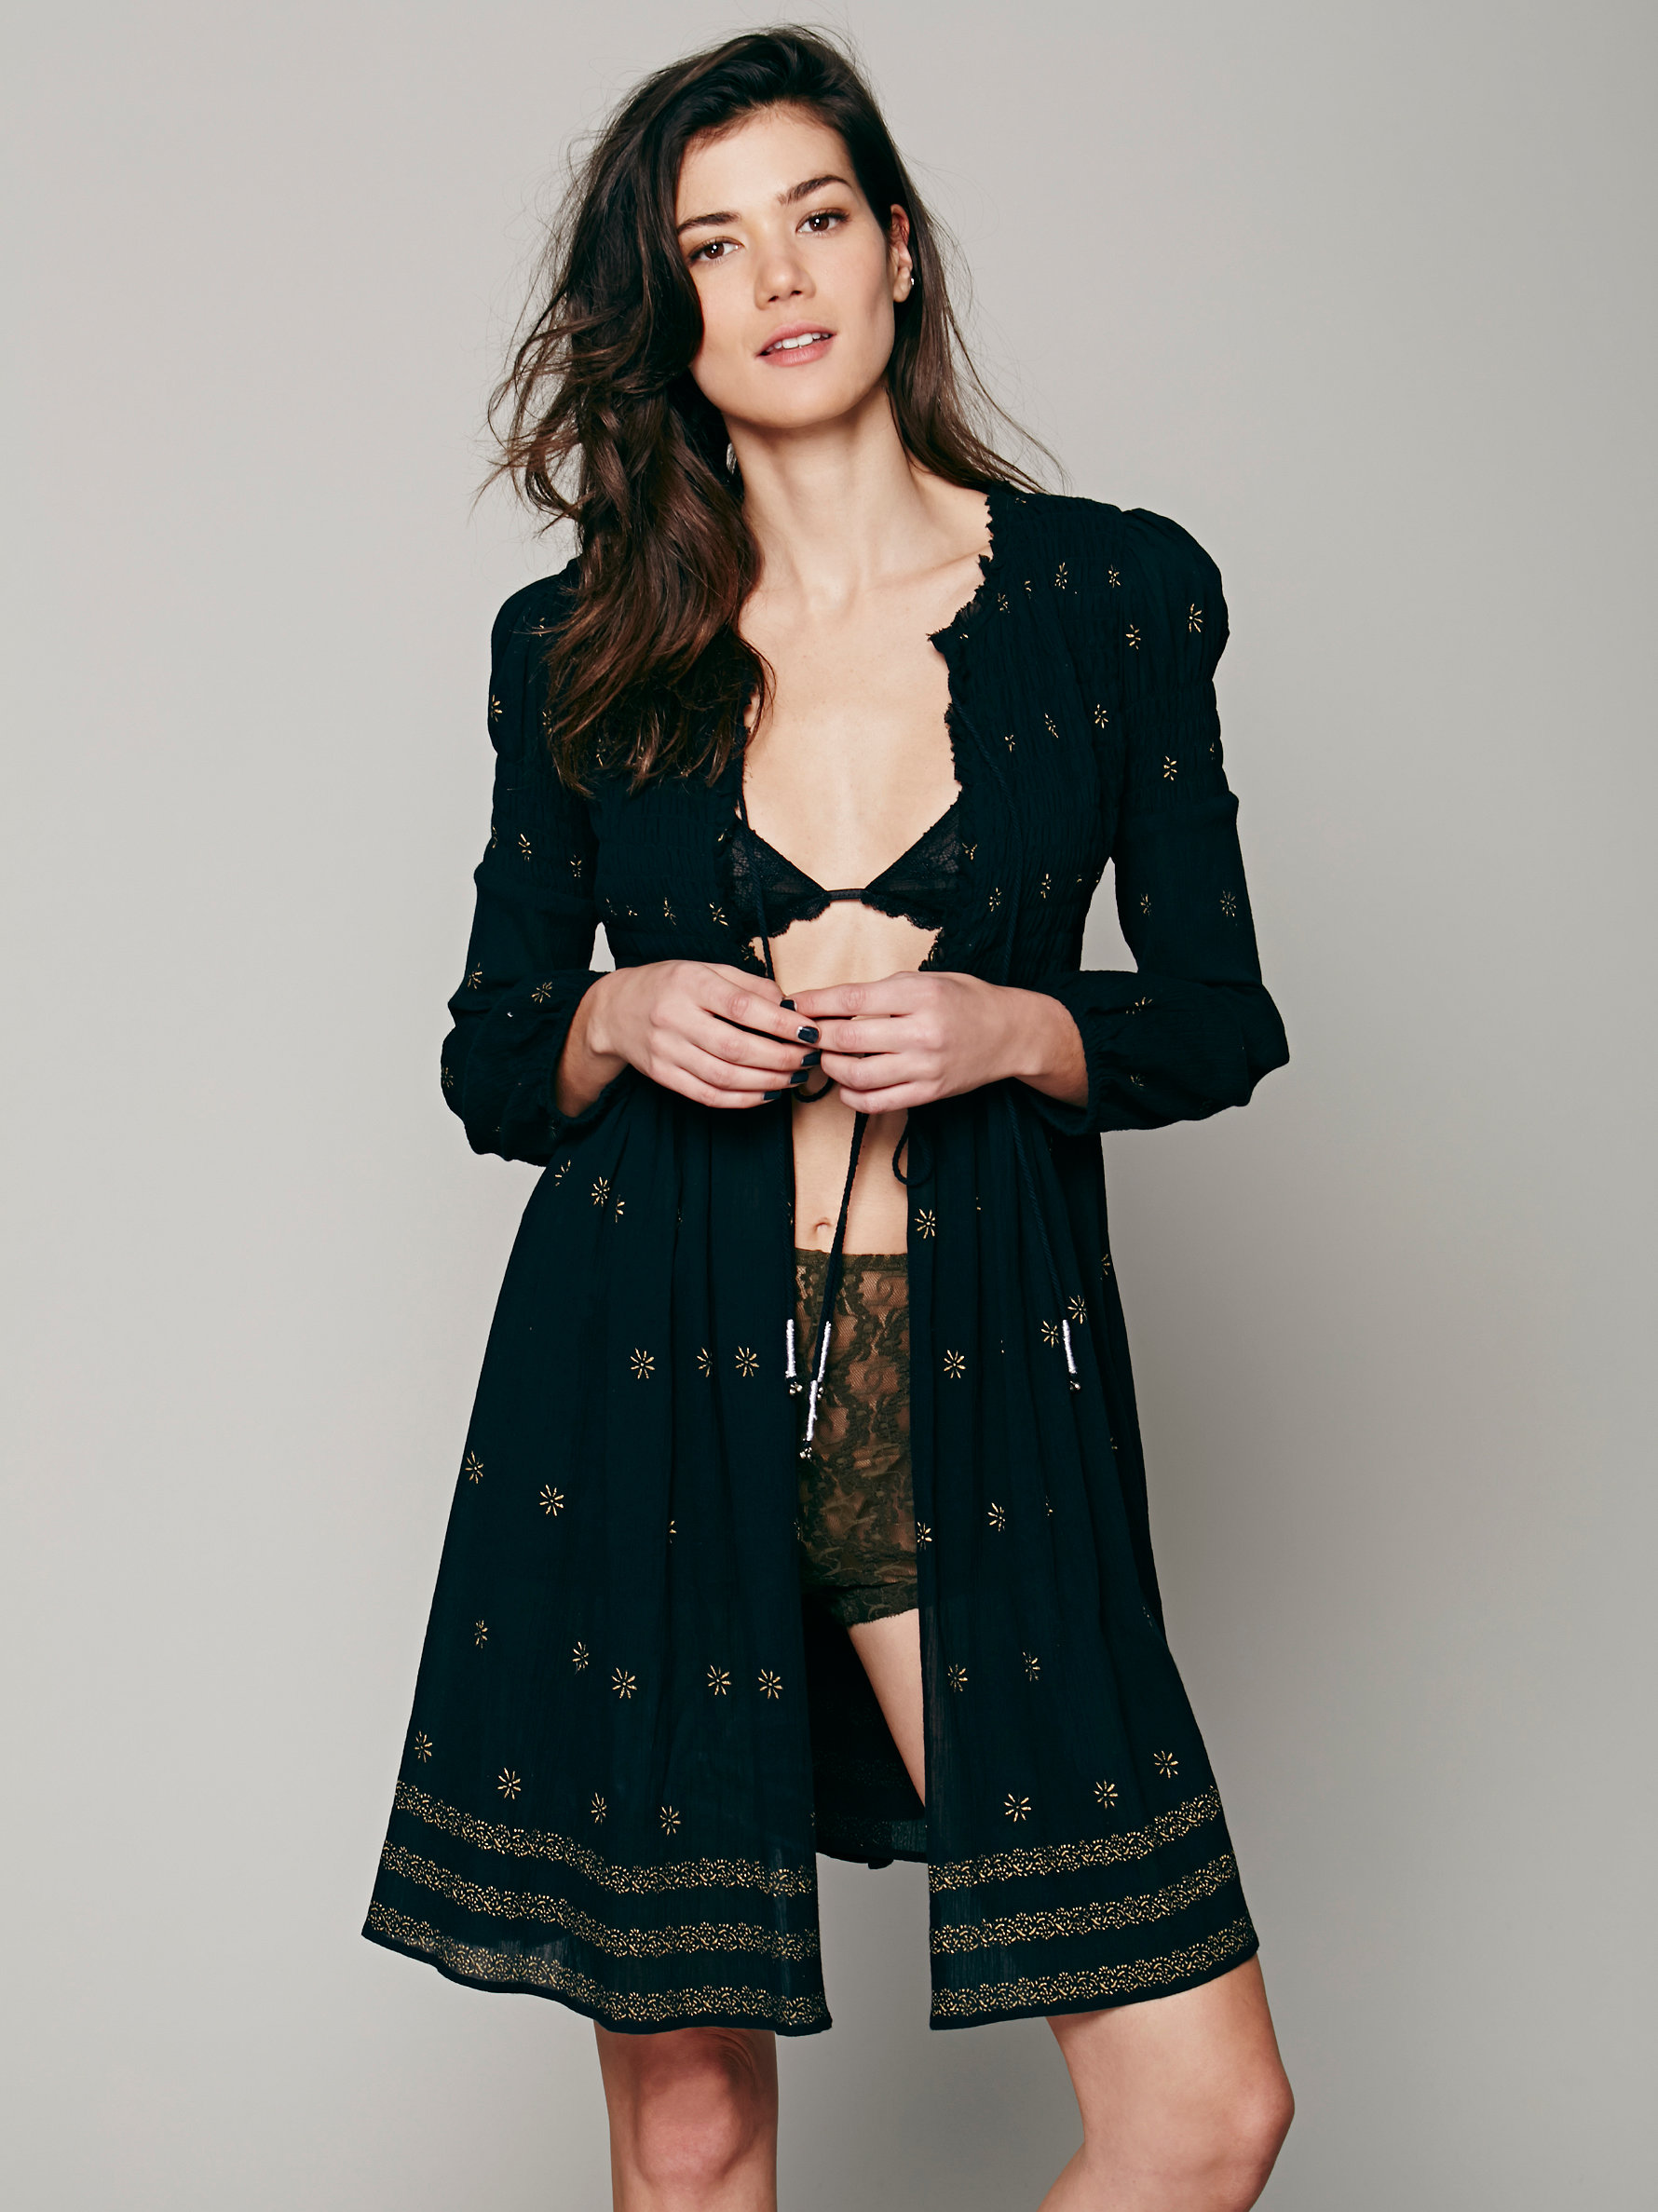 Free People Shayanti Smocked Robe | Fancy Friday - The Cost of Comfort - Cute Loungewear